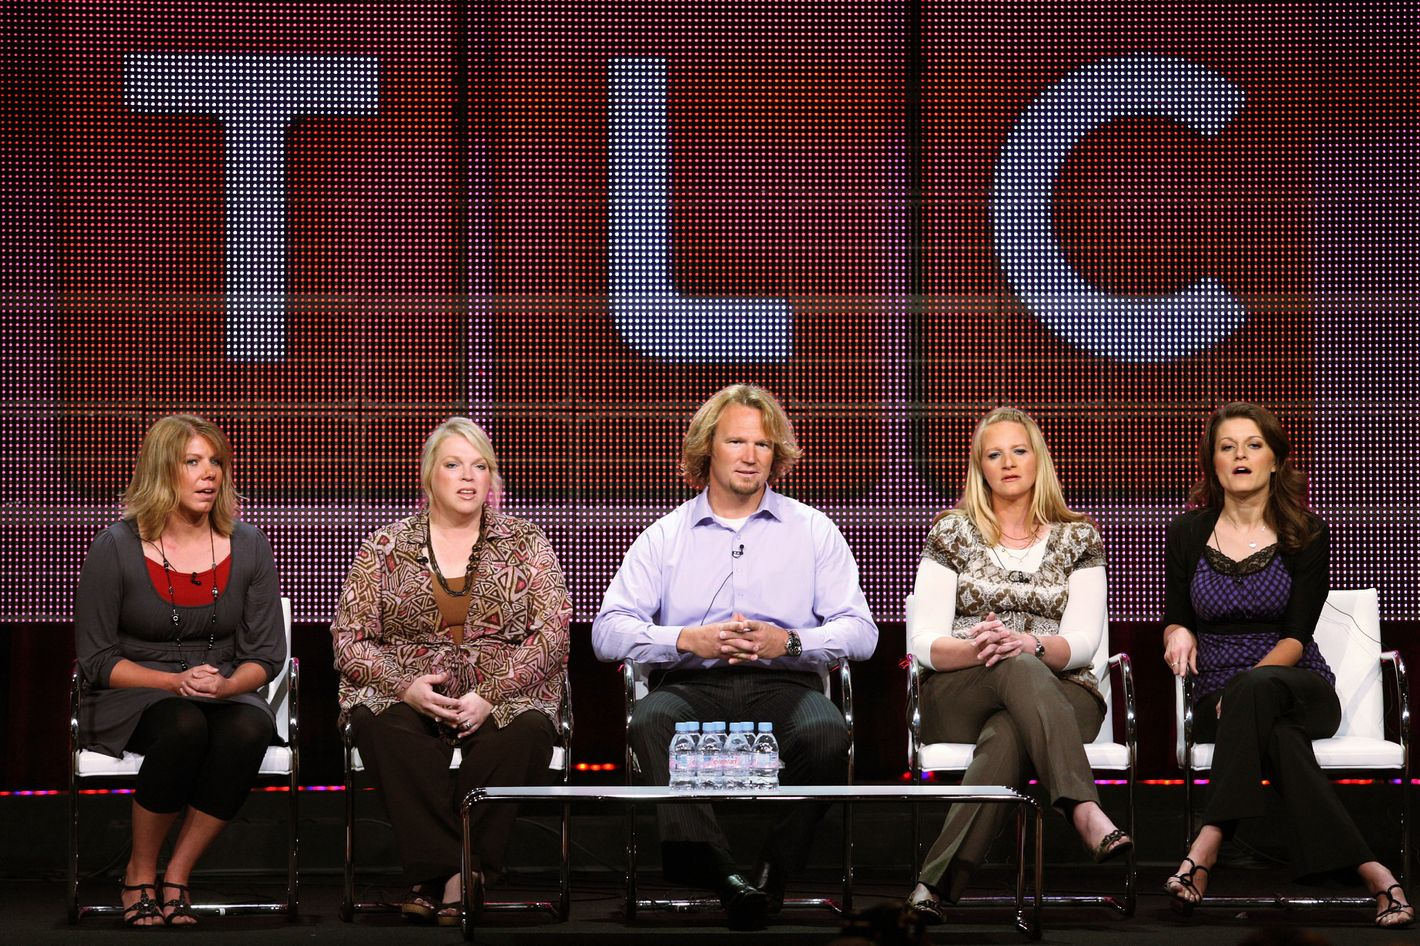 """BEVERLY HILLS, CA - AUGUST 06:  TV personalities Meri Brwon, Janelle Brown, Kody Brown, Christine Brown and Robyn Brown speak duinrg the """"Sister Wives"""" panel during the Discovery Communications portion of the 2010 Summer TCA pres tour held at the Beverly Hilton Hotel on August 6, 2010 in Beverly Hills, California.  (Photo by Frederick M. Brown/Getty Images)"""